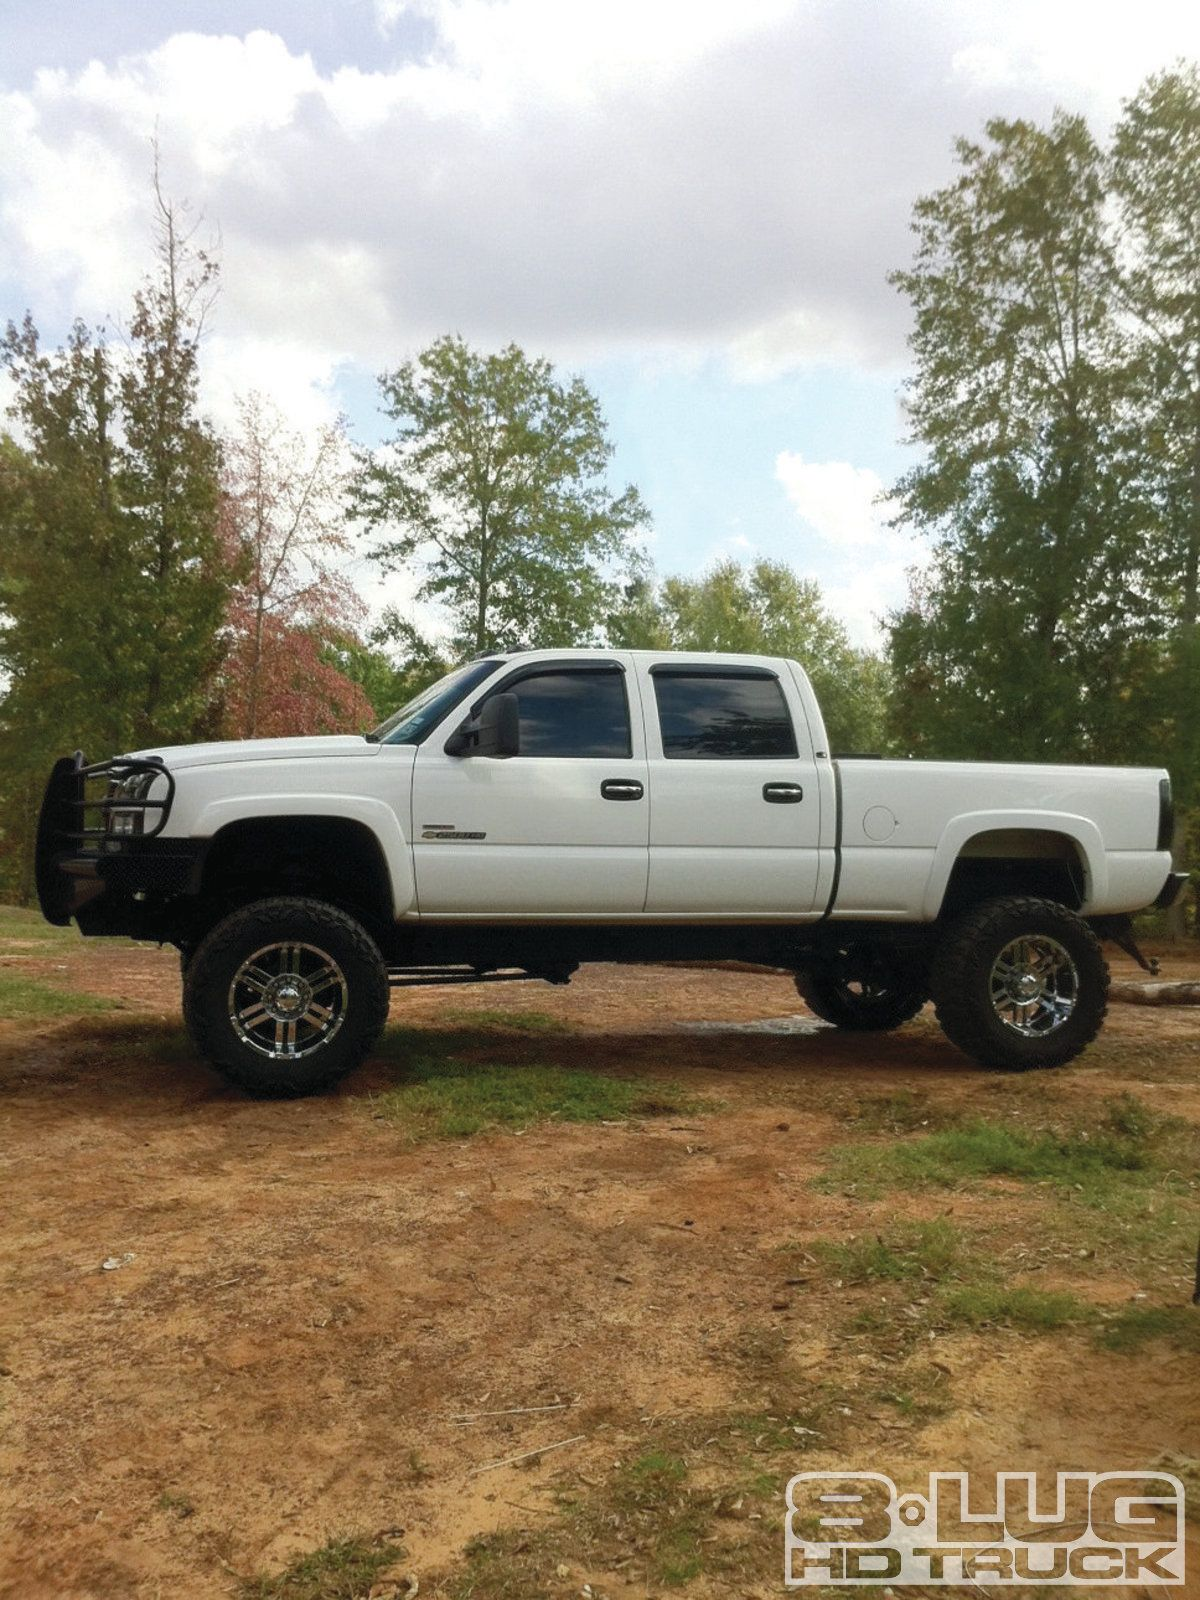 2005 chevy 2500hd duramax fire it up let them horses sing pinterest cars vehicle and. Black Bedroom Furniture Sets. Home Design Ideas